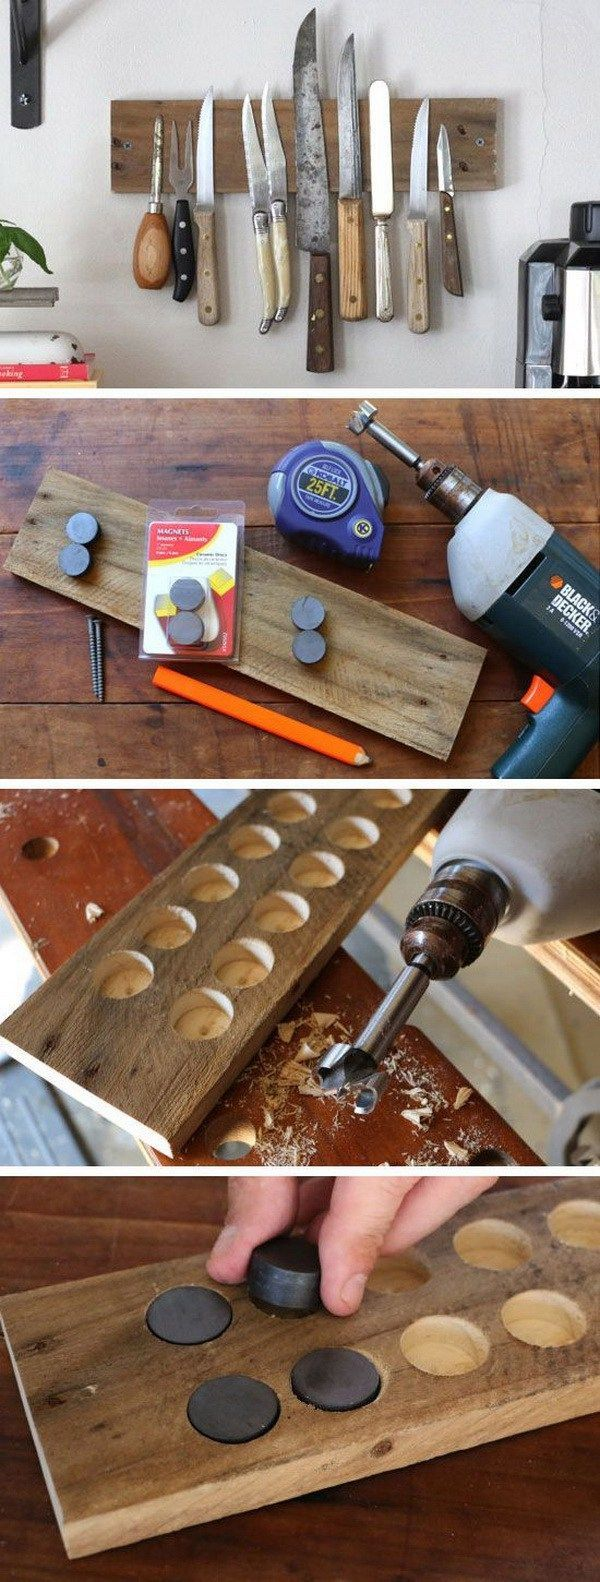 DIY Rustic Wall Rack: This exposed magnetic knife rack is super useful for maximizing storage space and providing easy access to kitchen tools. mehr geniale Sachen findest du auf Interessante-Dinge.de